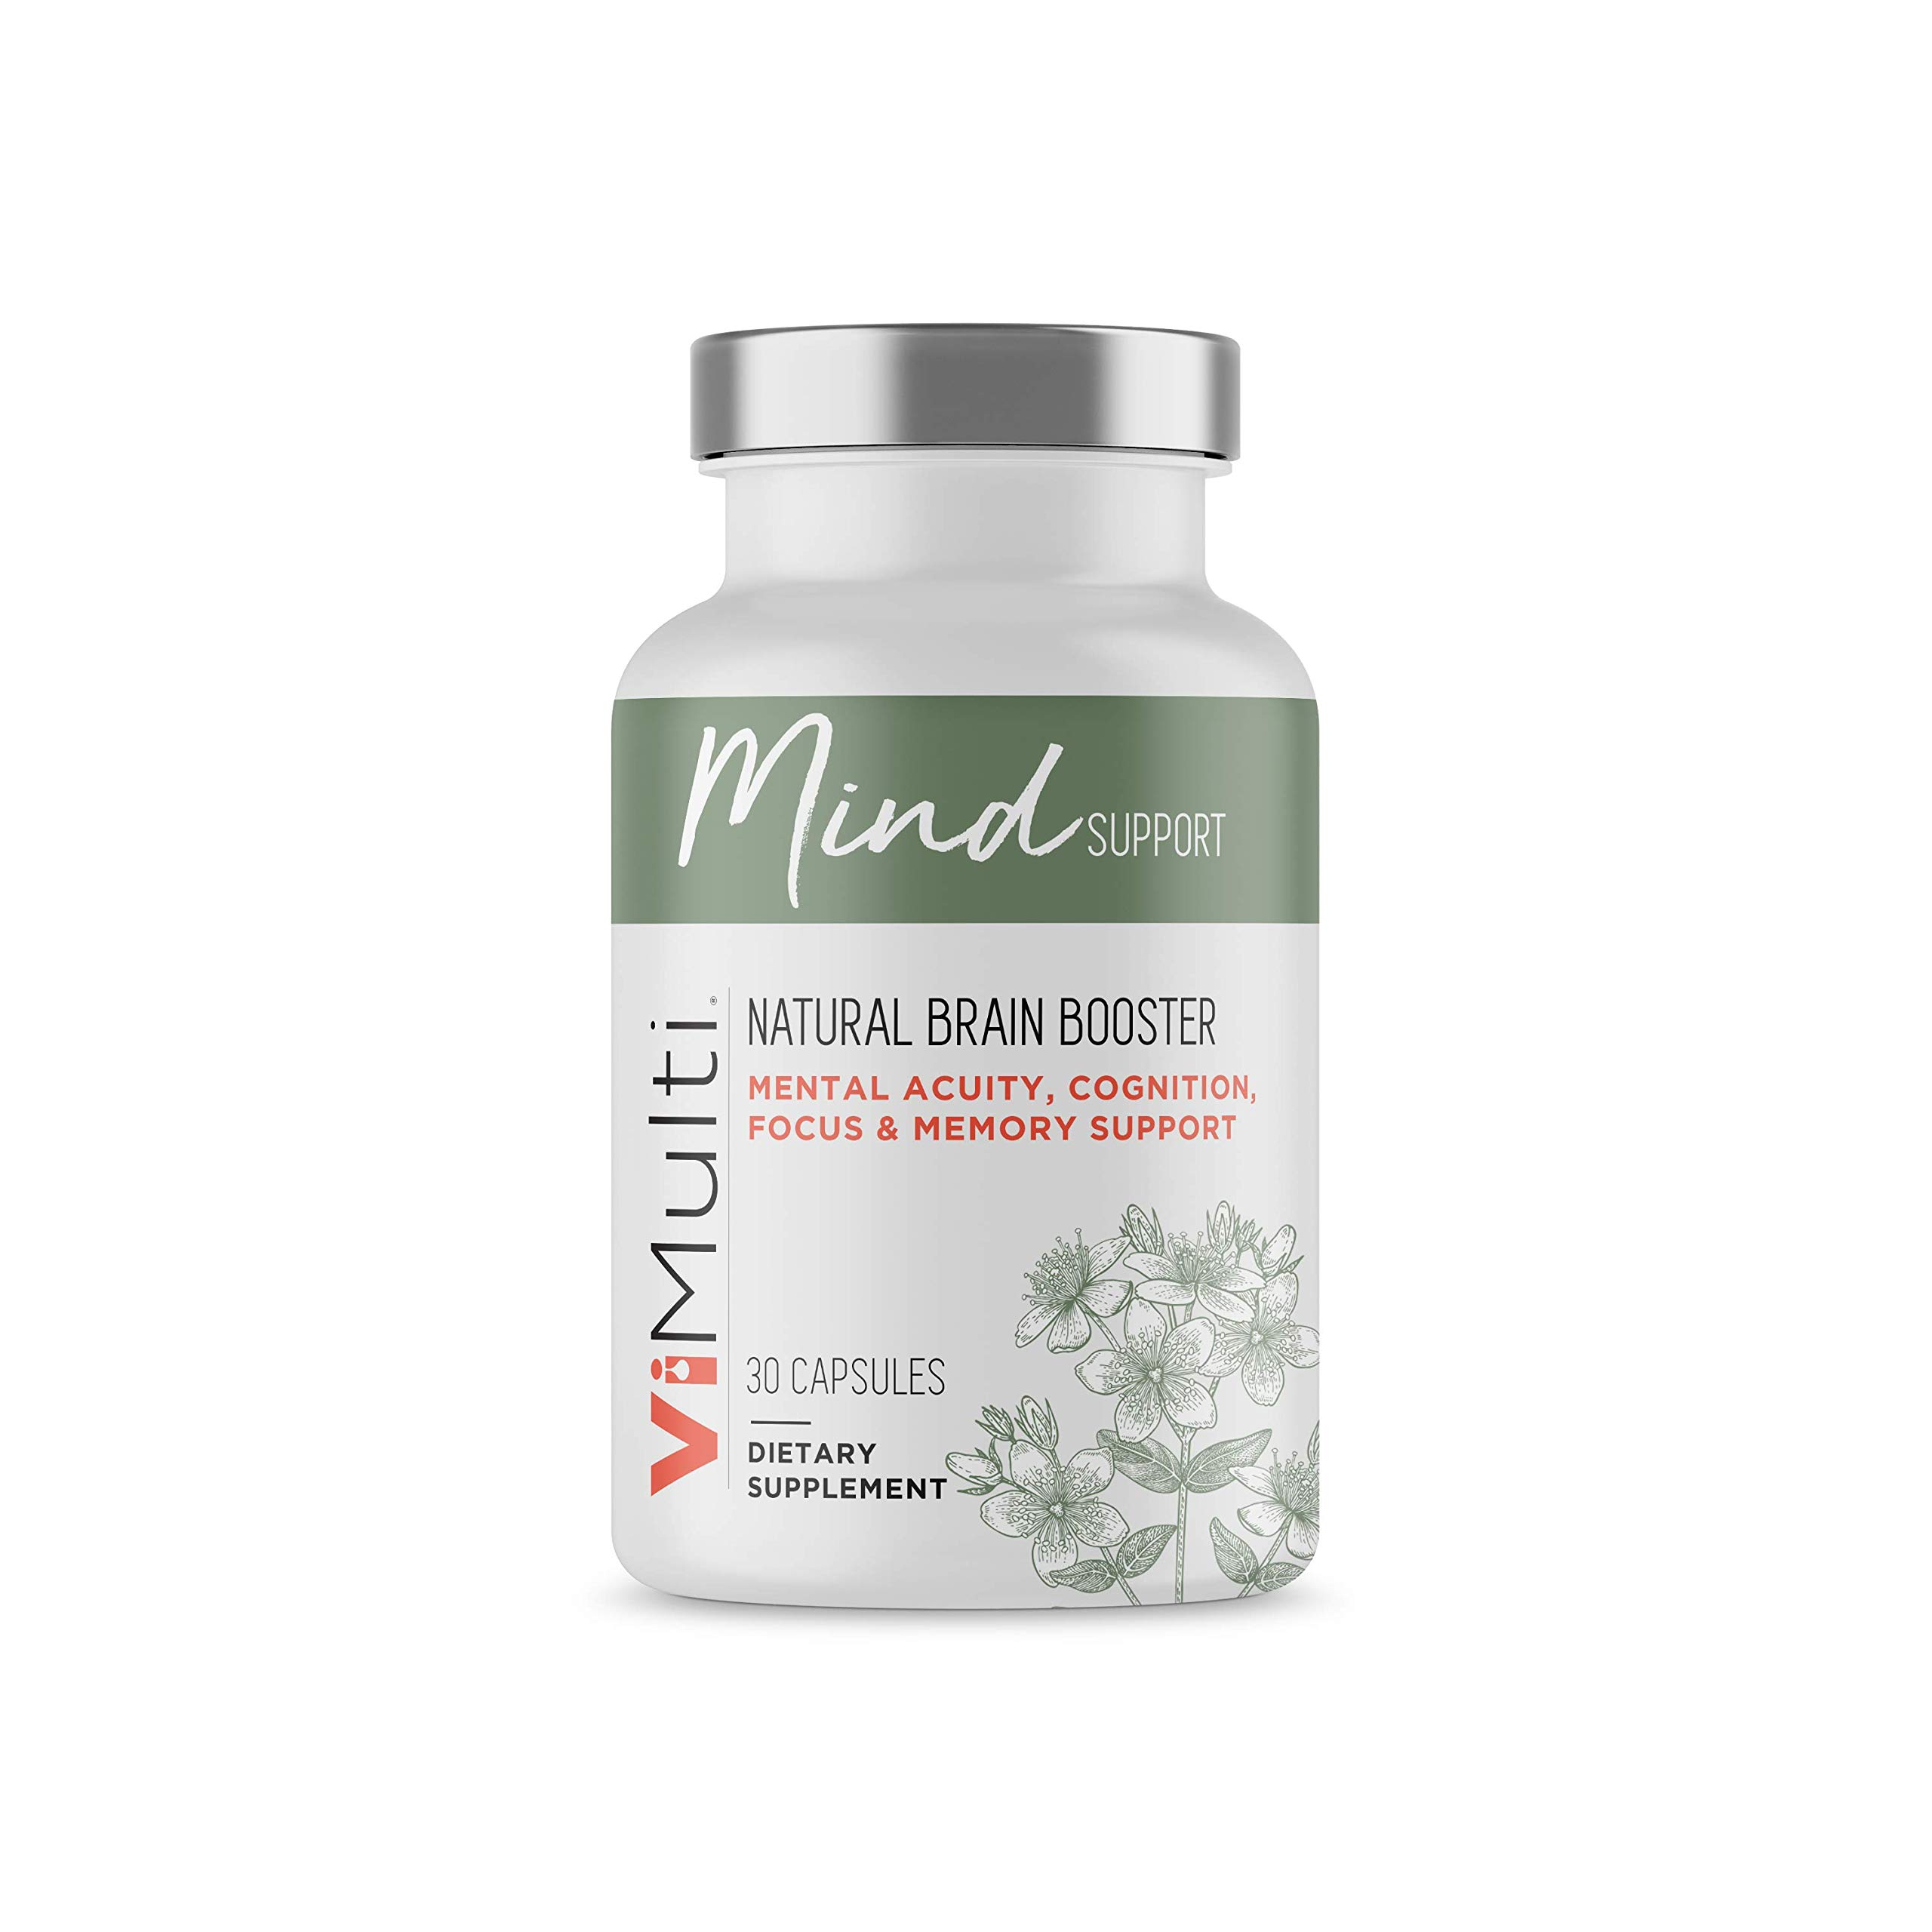 ViMulti Mind Support - Supplements for Improved Concentration, Focus, Memory and Overall Brain Function